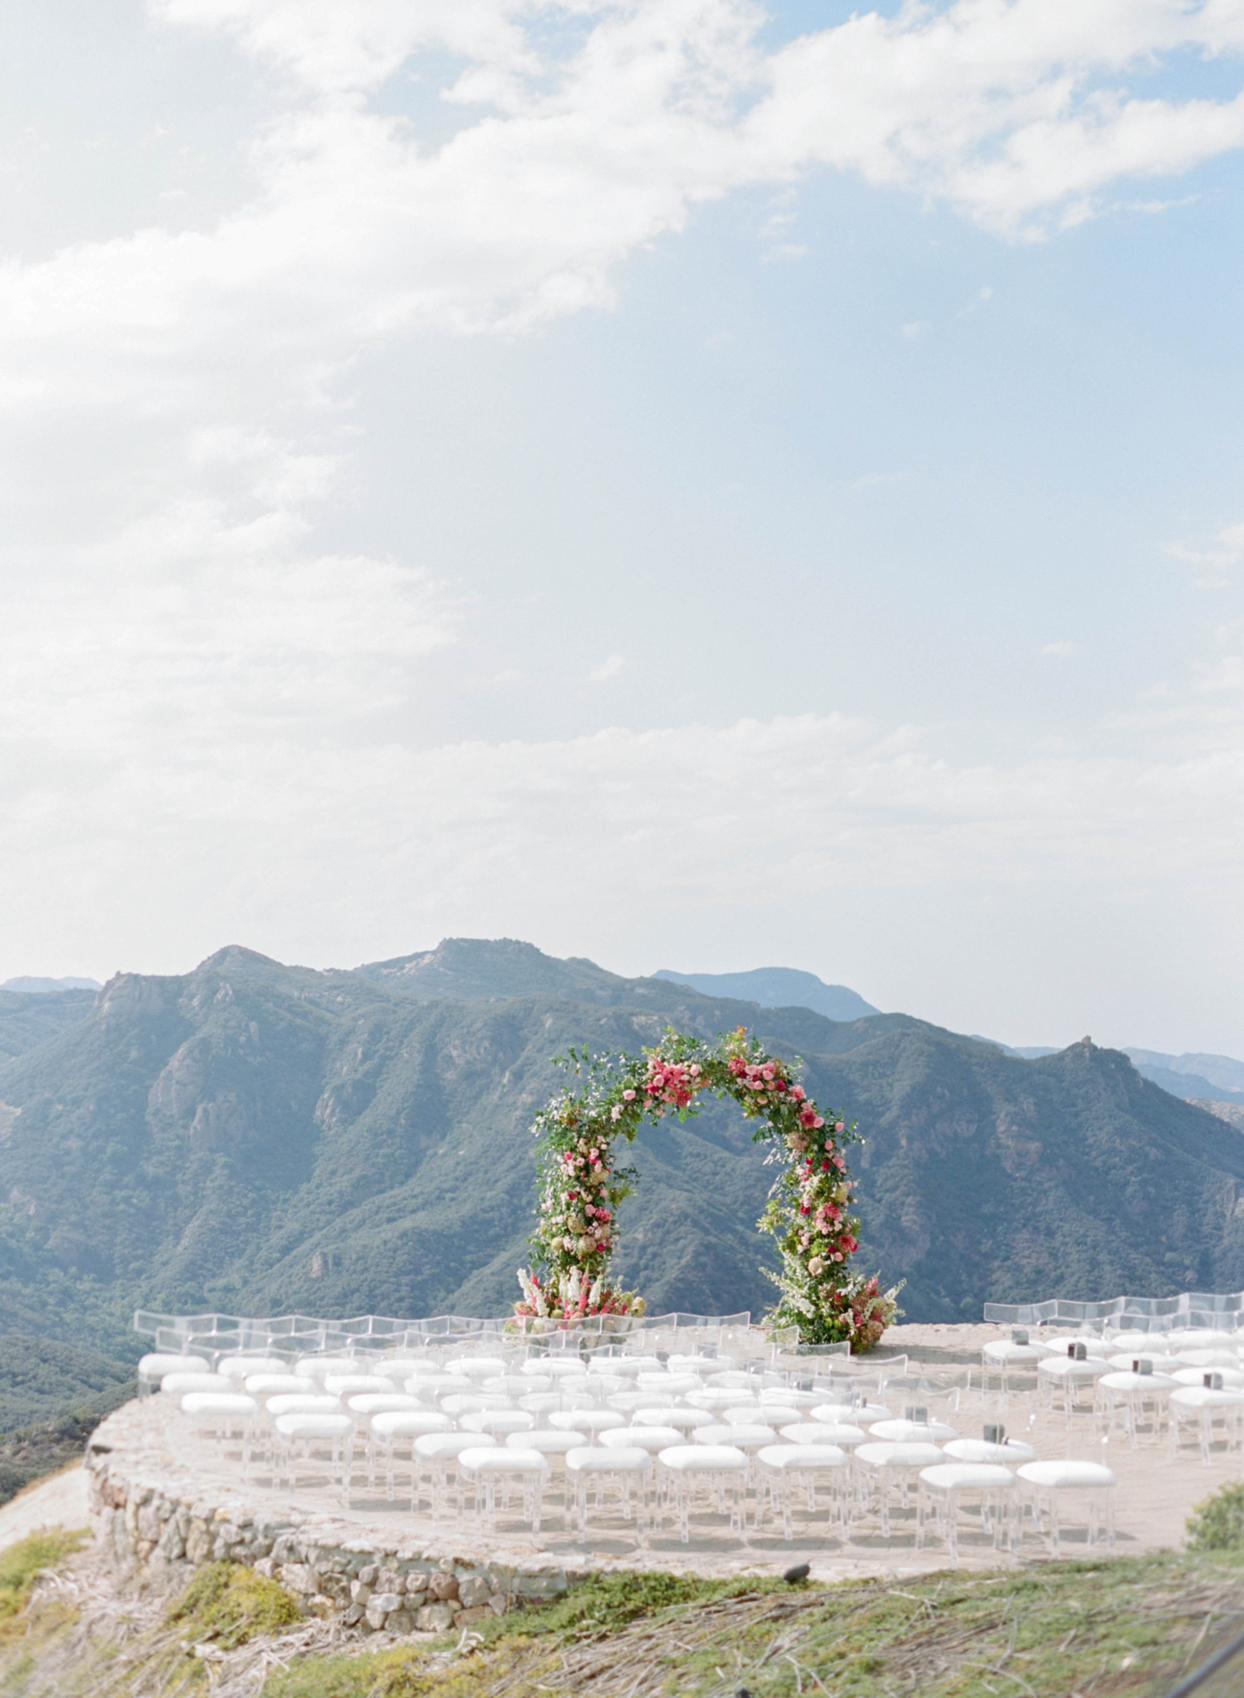 rose and dahlia floral arch and ceremony chairs overlooking mountains